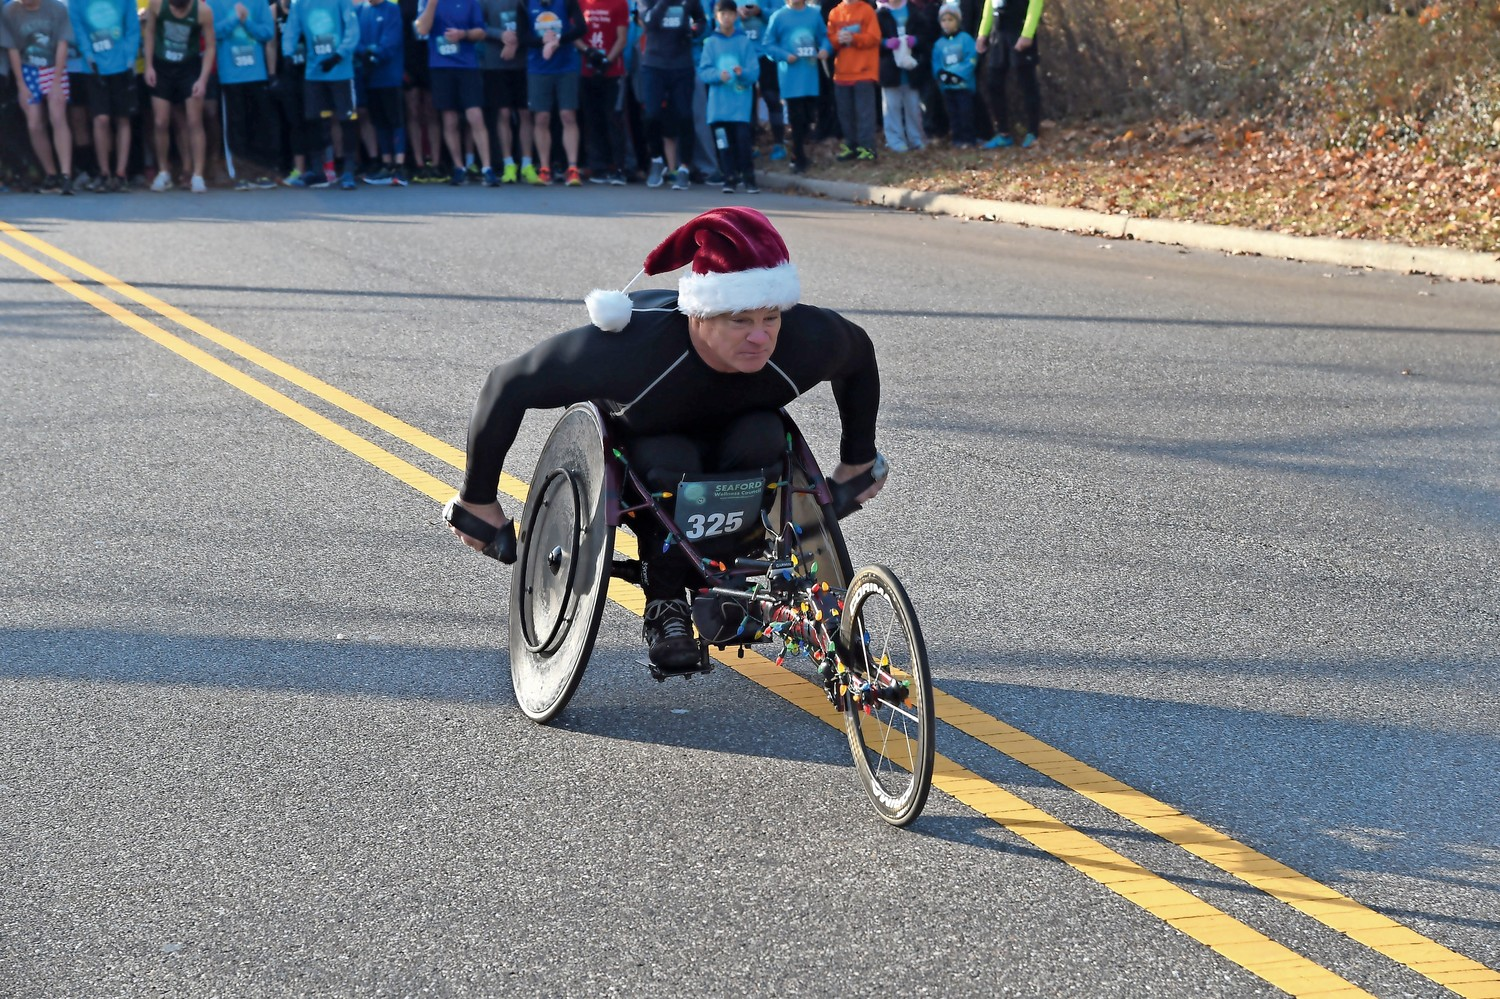 Peter Hawkins raced down Seamans Neck Road at the 14th annual Hot Chocolate 5K Run on Dec. 2.